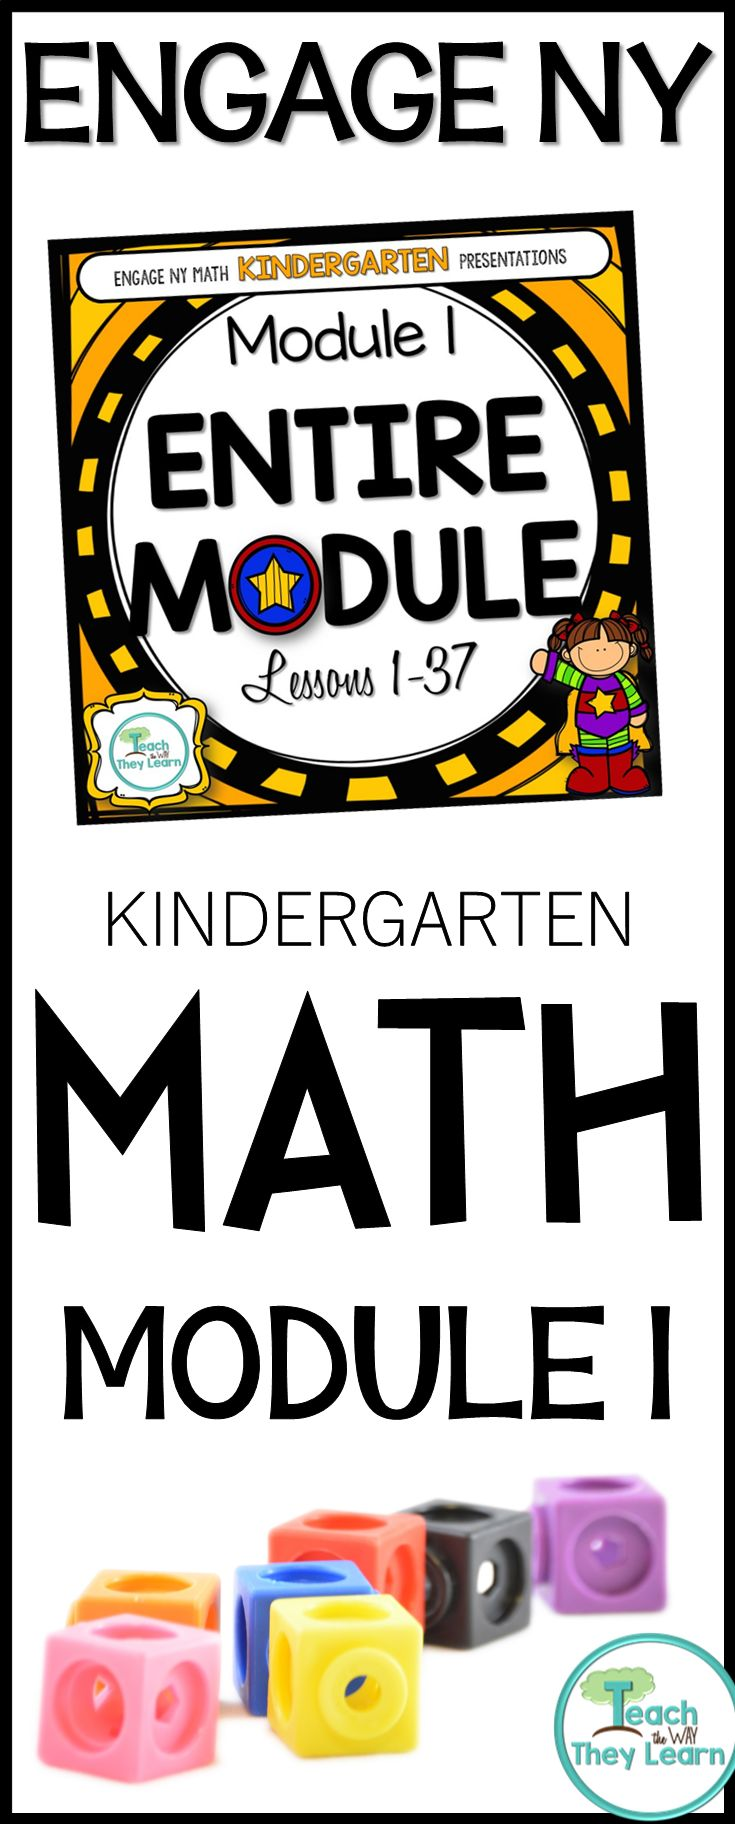 Kindergarten Engage NY presentations to teach math lessons for the entire module. Covers all lessons in the listed Engage NY math kindergarten module. Engage NY/Eureka math are Common Core Aligned and awesome math curriculum, but hard to teach from a manual. Put down your lesson plans and use these Engage New York presentations to keep students engaged. PDF format allows slides to work in classrooms that use interactive whiteboards or anywhere you would show a Power Point presentation.